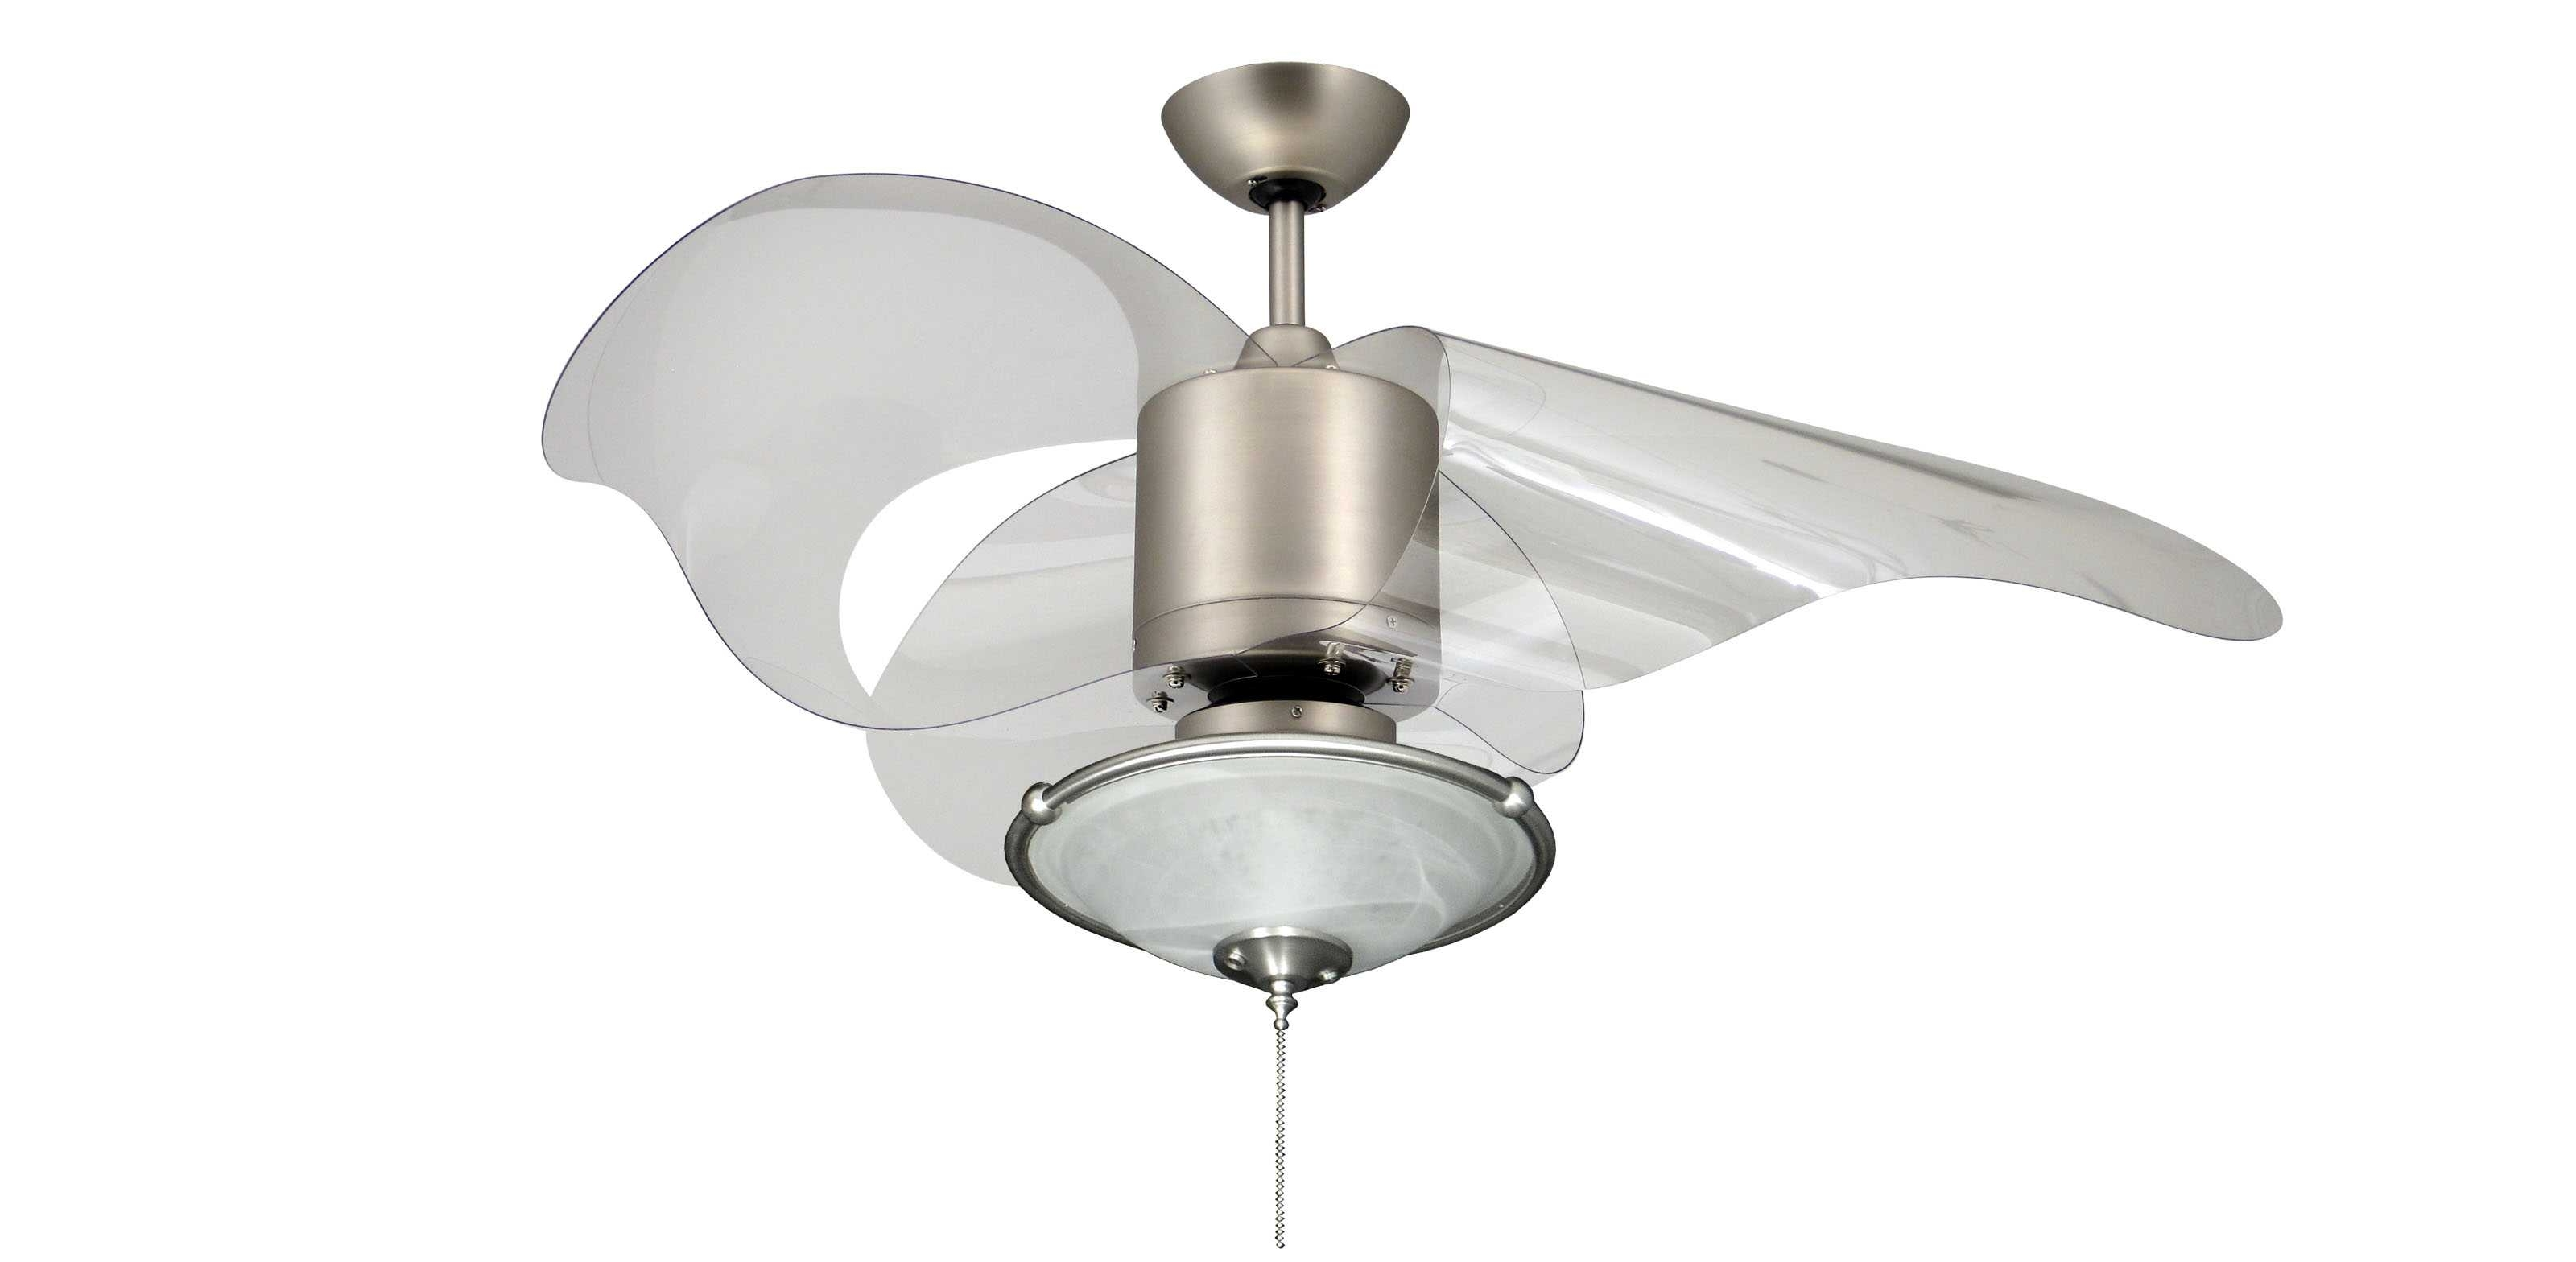 Small Outdoor Ceiling Fans With Lights Intended For Favorite Interesting I Small Outdoor Ceiling Fan With Light 2018 Ceiling (View 3 of 20)